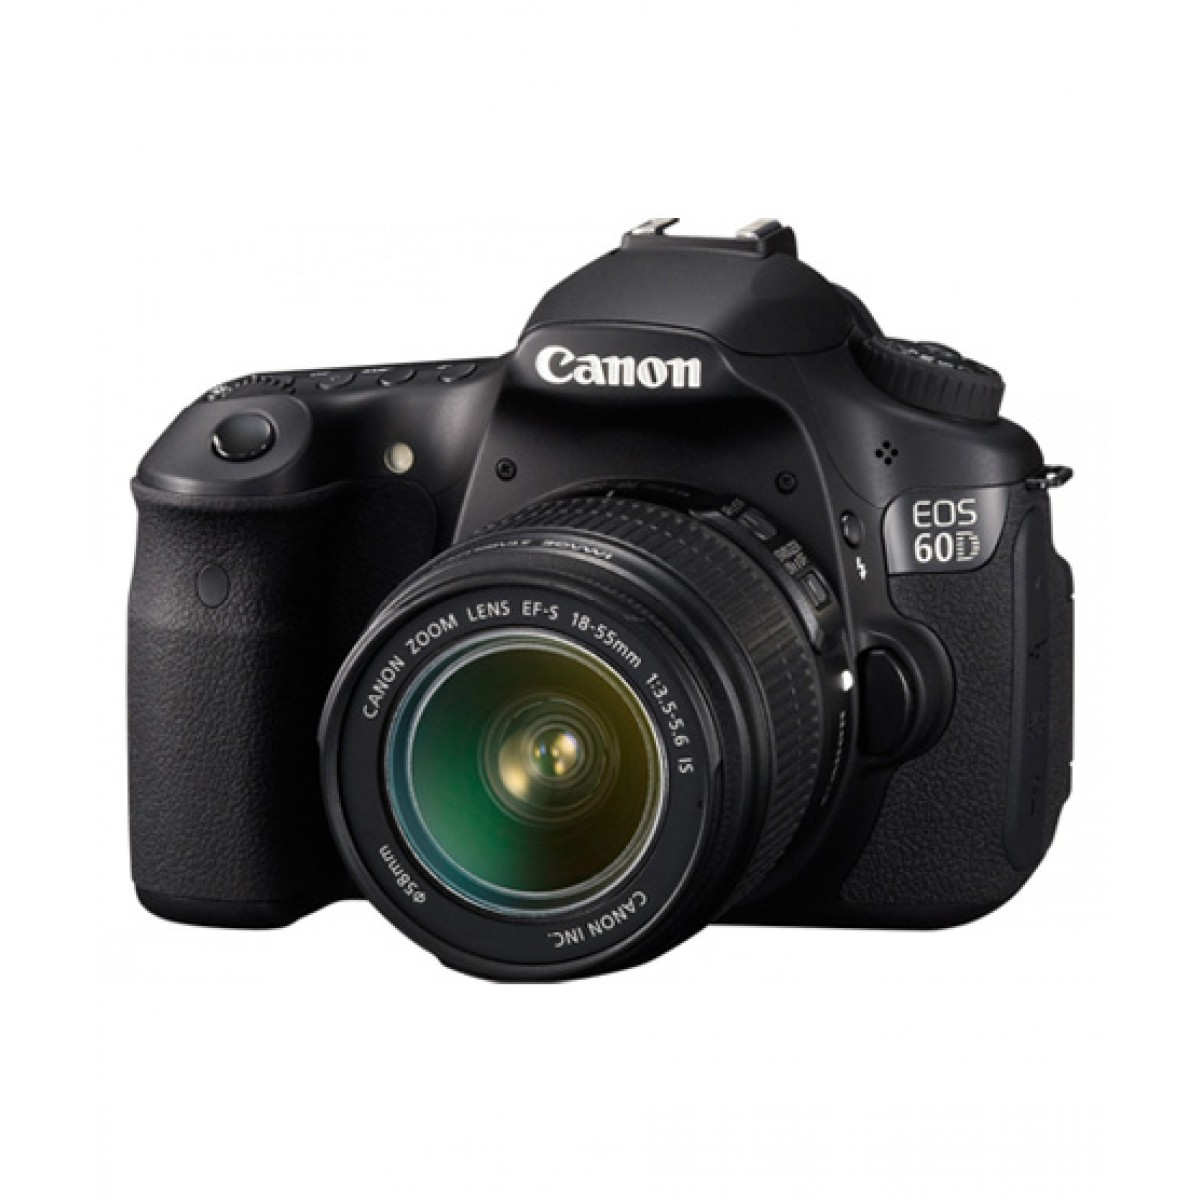 Canon EOS 60D DSLR Camera with 18-55mm Lens